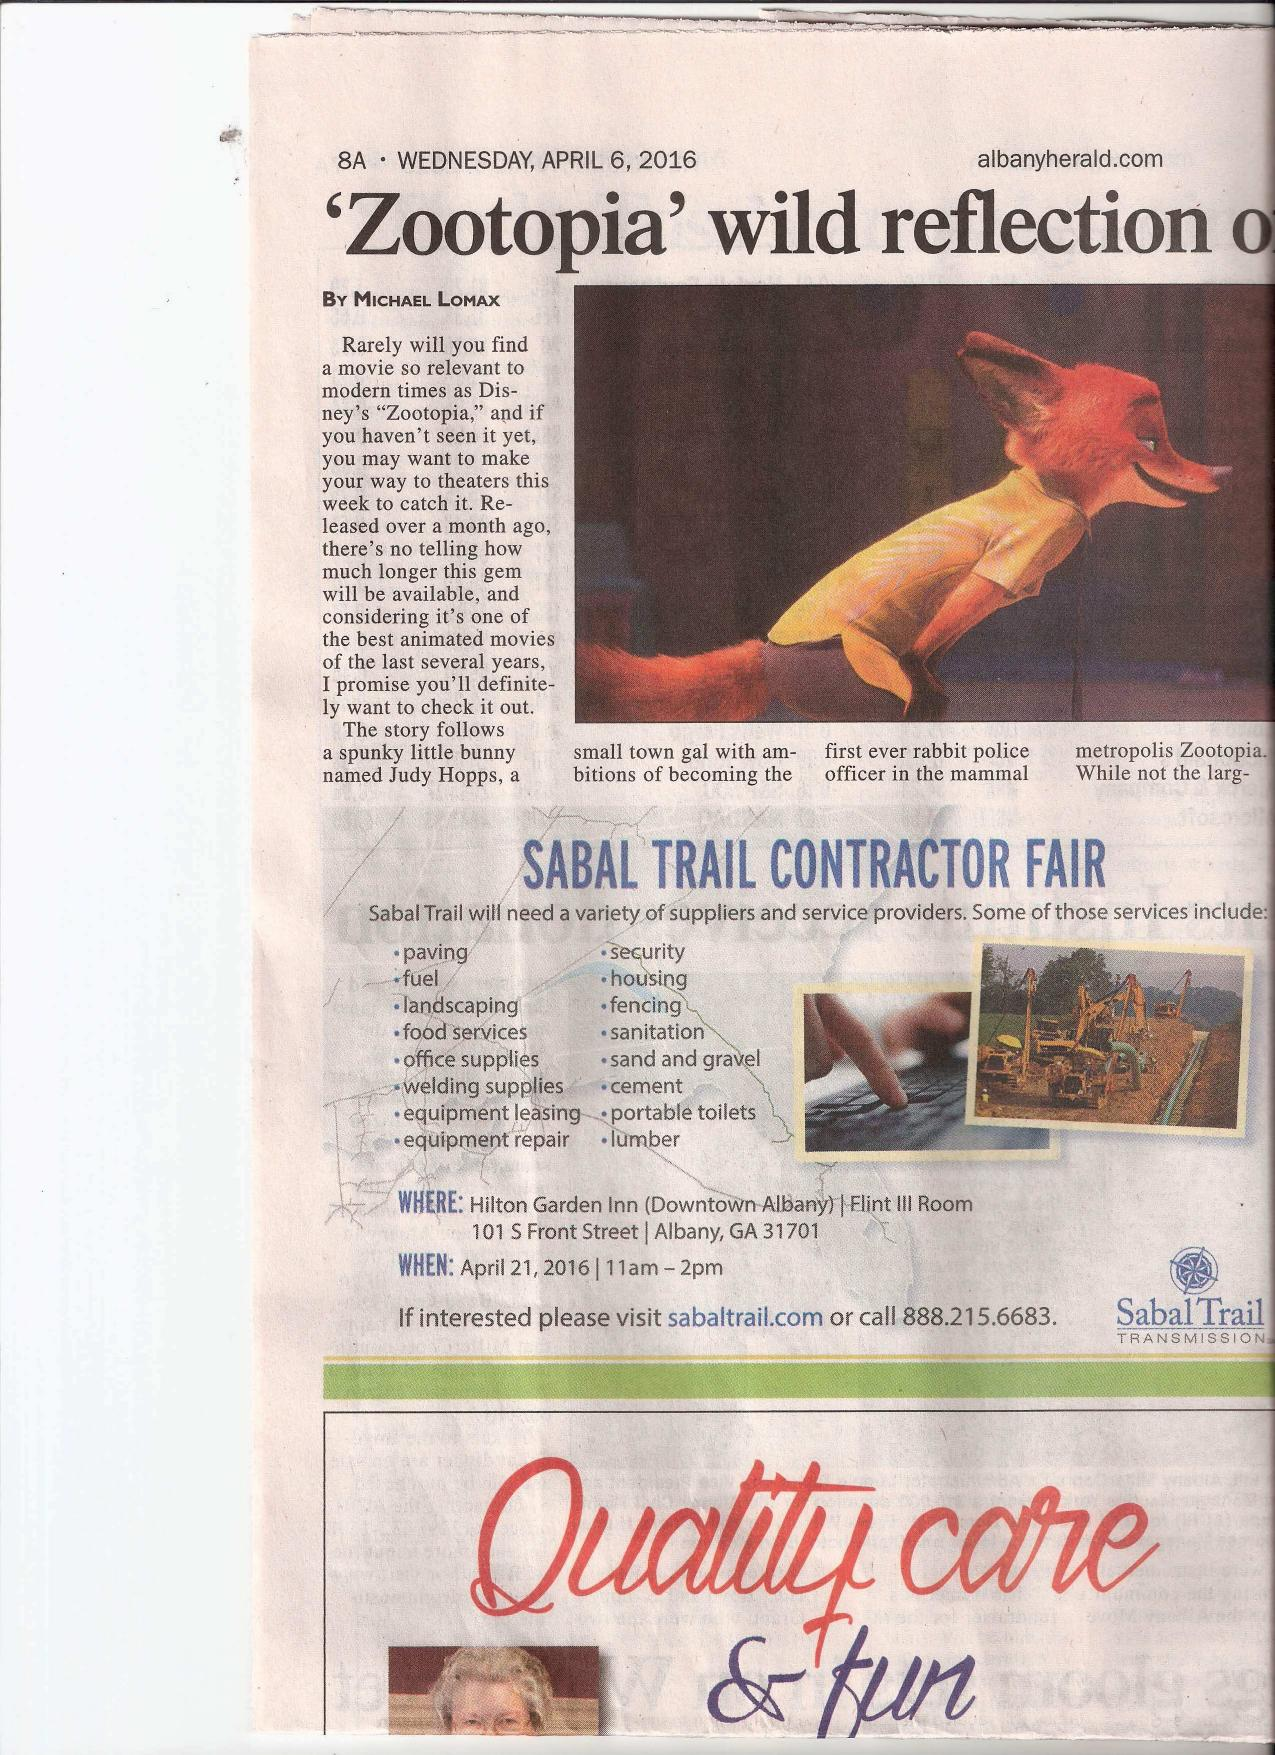 1275x1755 Sabat-Trail-Contractor-Fair-2016-04-21-0001, in Contractor Fairs, by Sabal Trail, for SpectraBusters.org, 9 April 2016